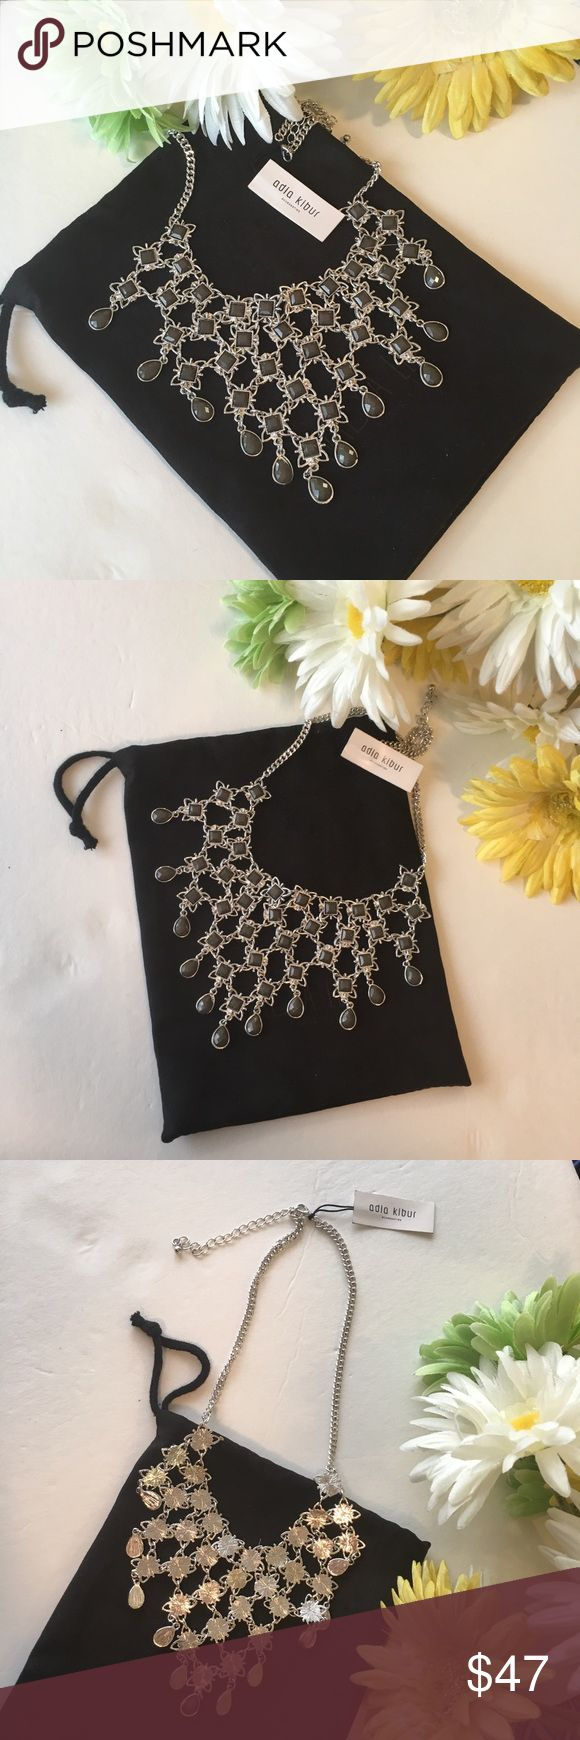 Adia Kibur Boho Chic Statement Necklace! Beautiful statement necklace bib in silver & grey stones. Comes with extension. NWT.❌trades❌ Adia Kibur Jewelry Necklaces